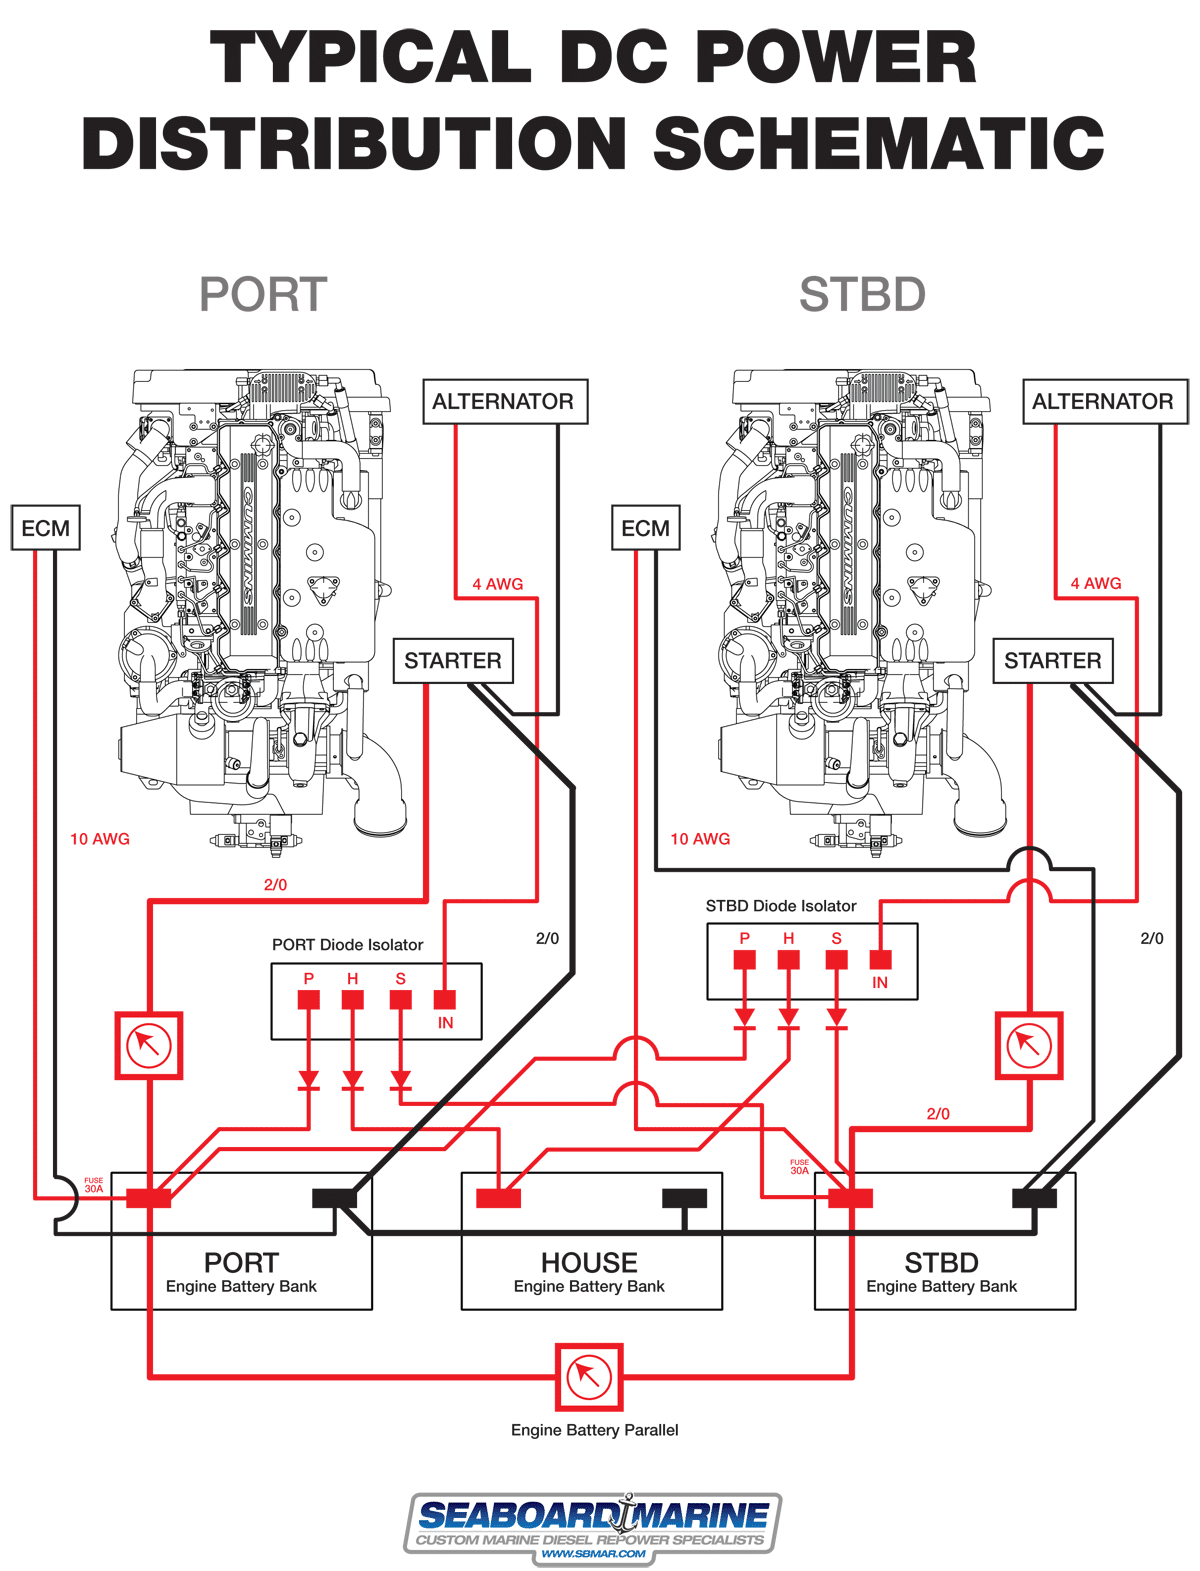 Typical DC Power Distribution Examples for Marine Engines - Seaboard MarineSeaboard Marine